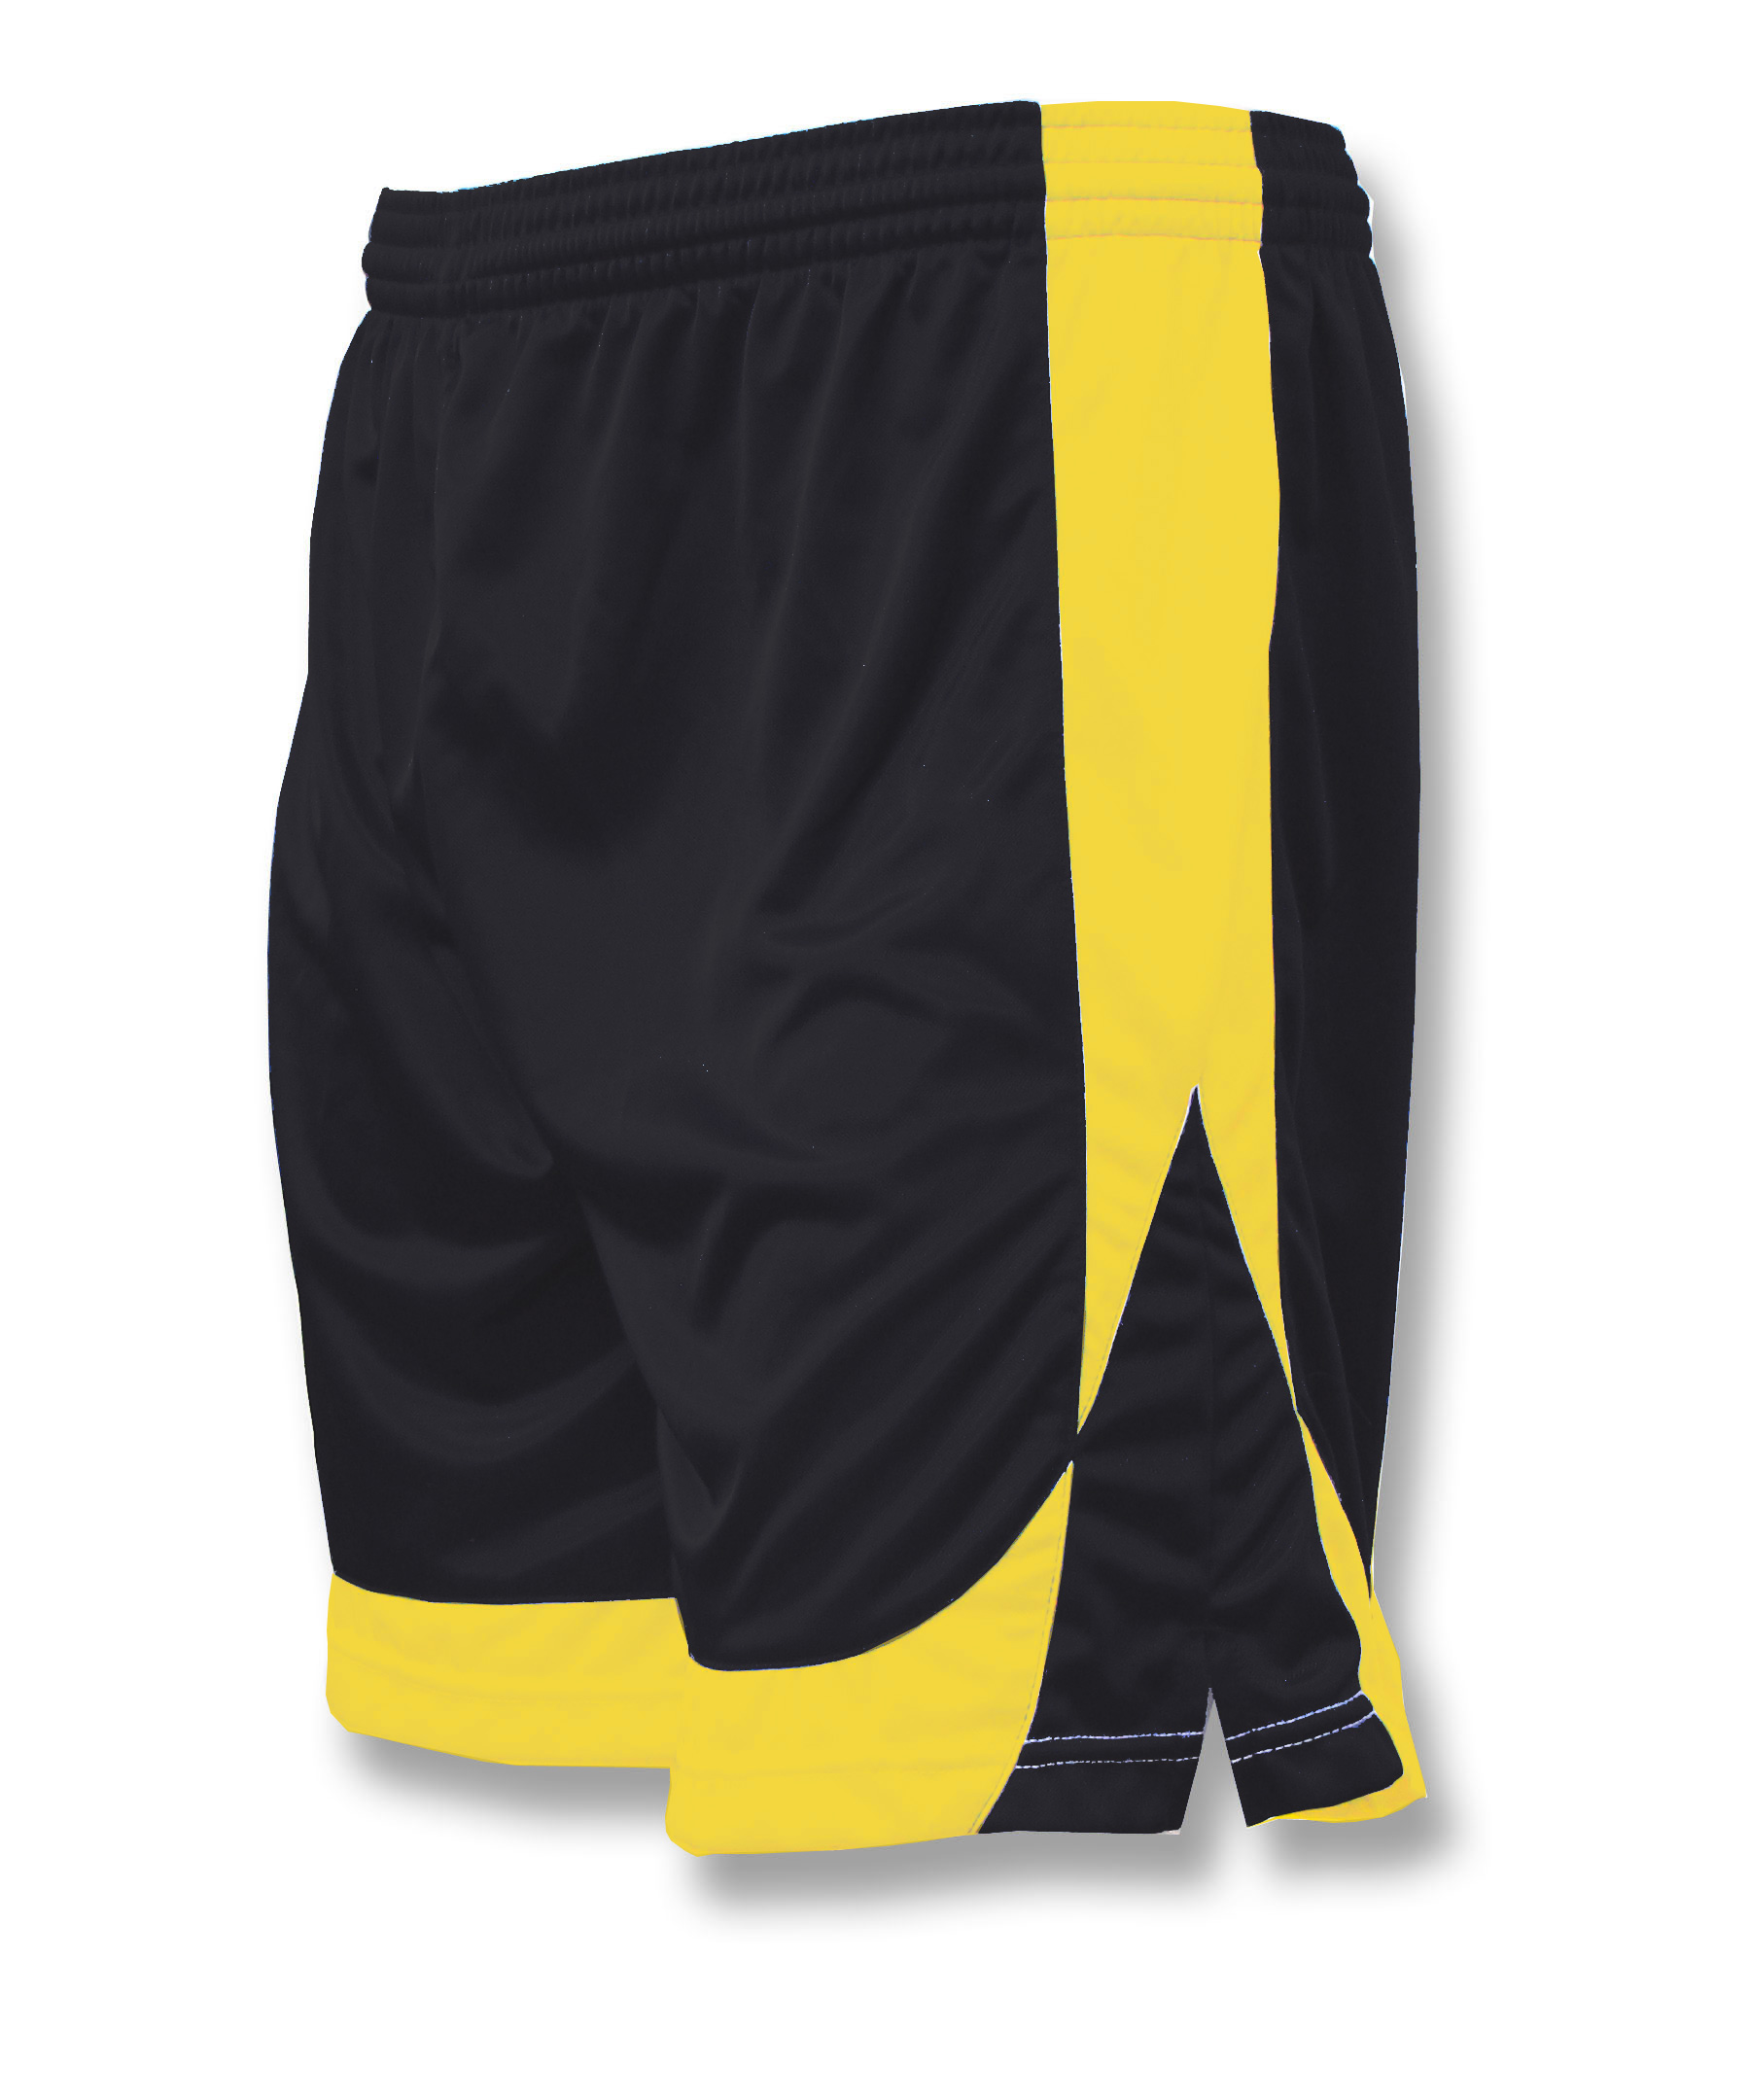 Omega soccer shorts in black/gold by Code Four Athletics